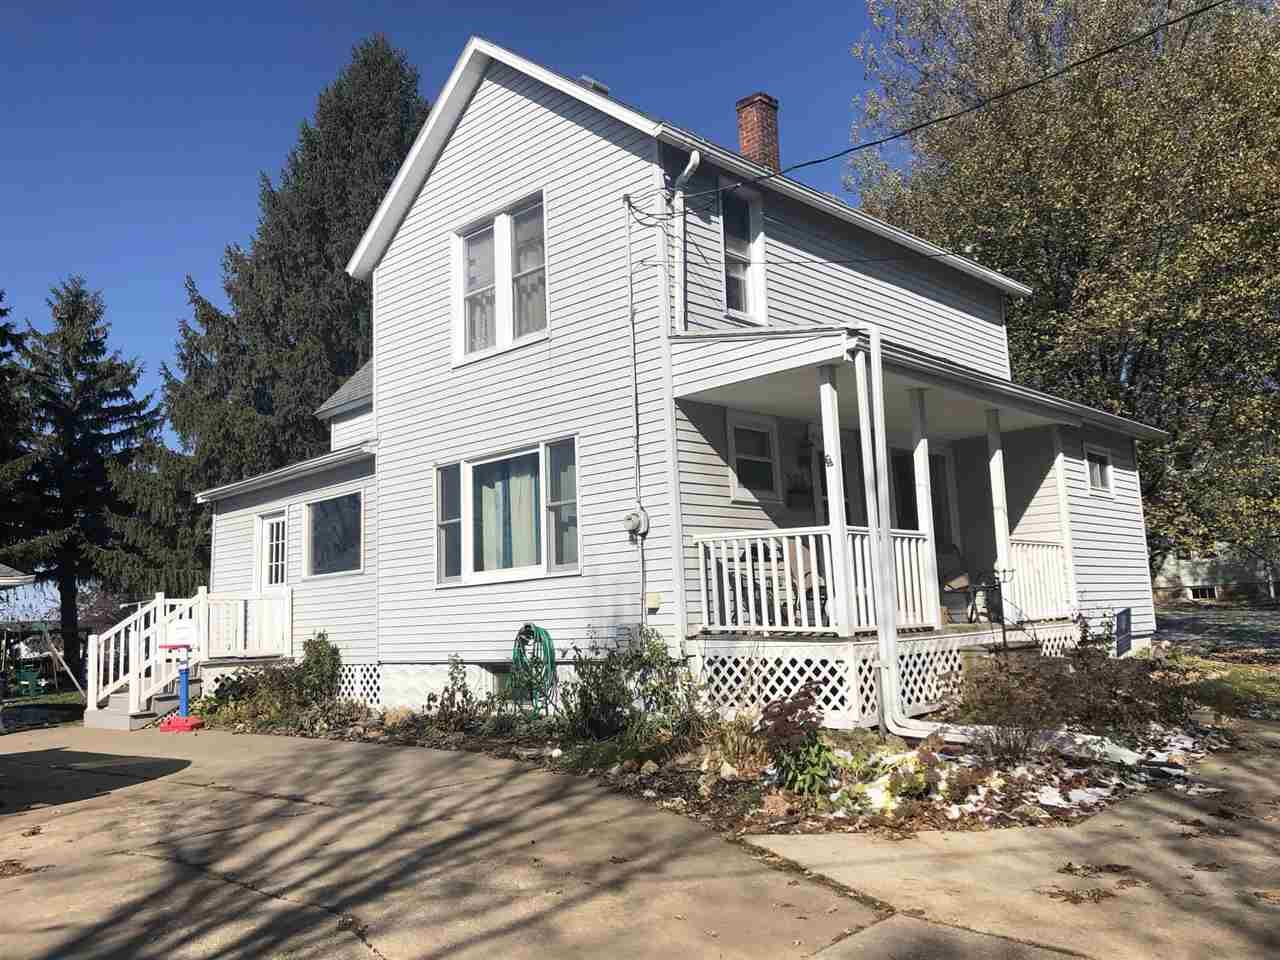 624 S Main St, Westby, WI 54667 - #: 1896945